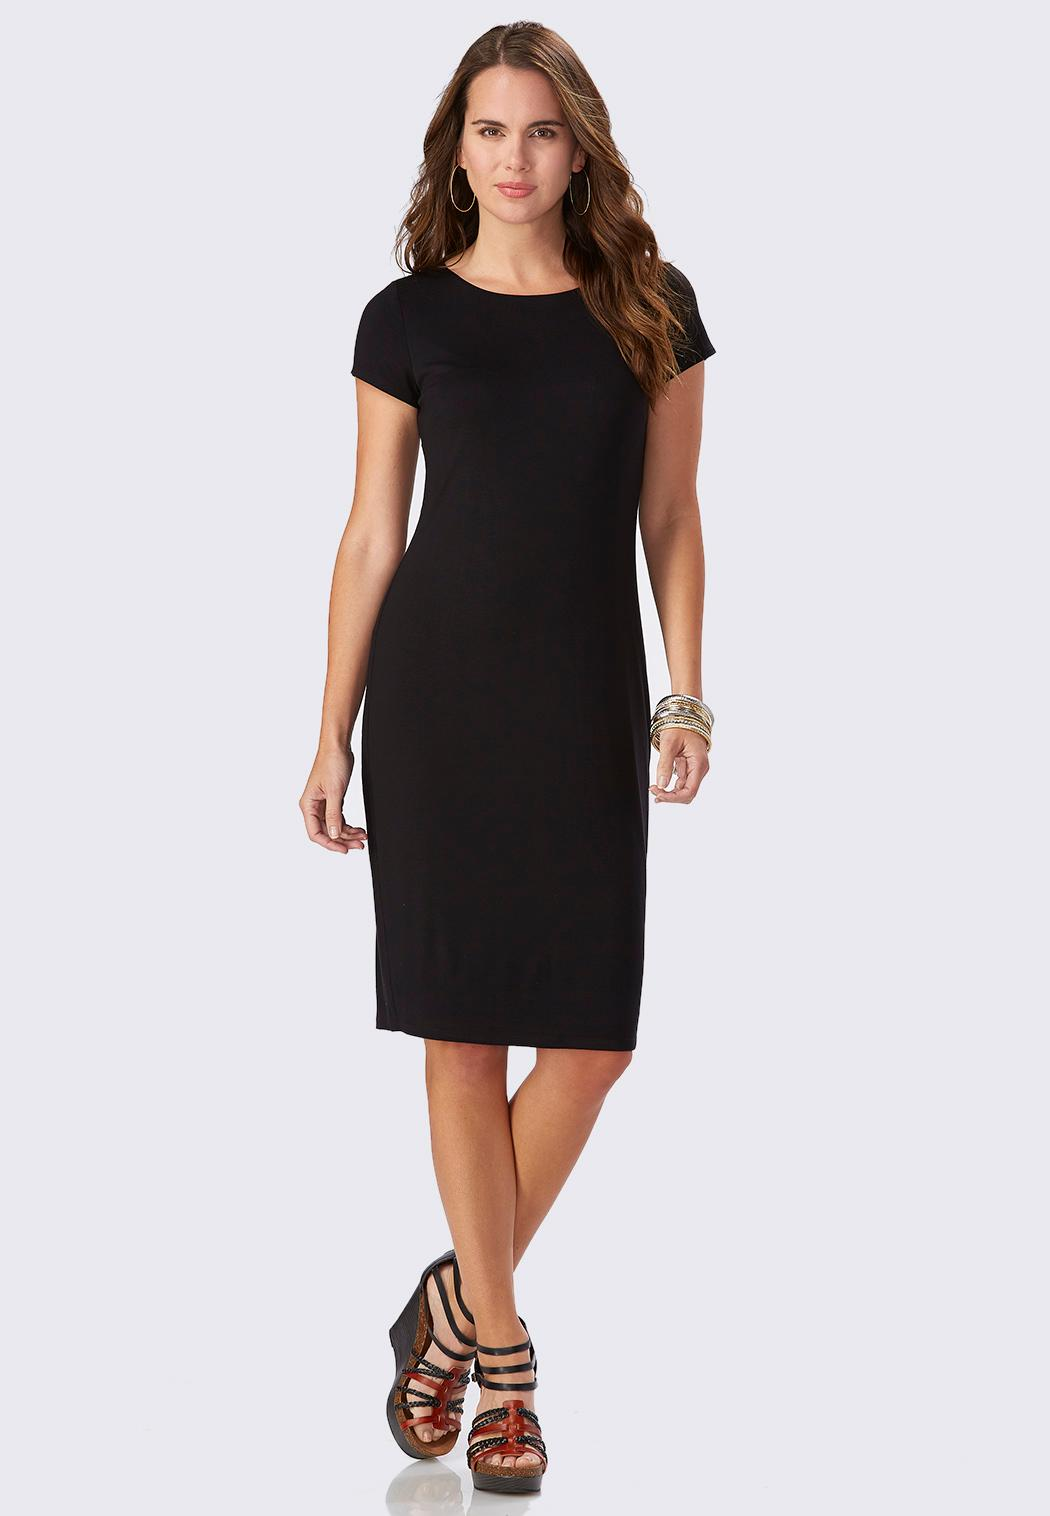 Cato Plus Size Dresses